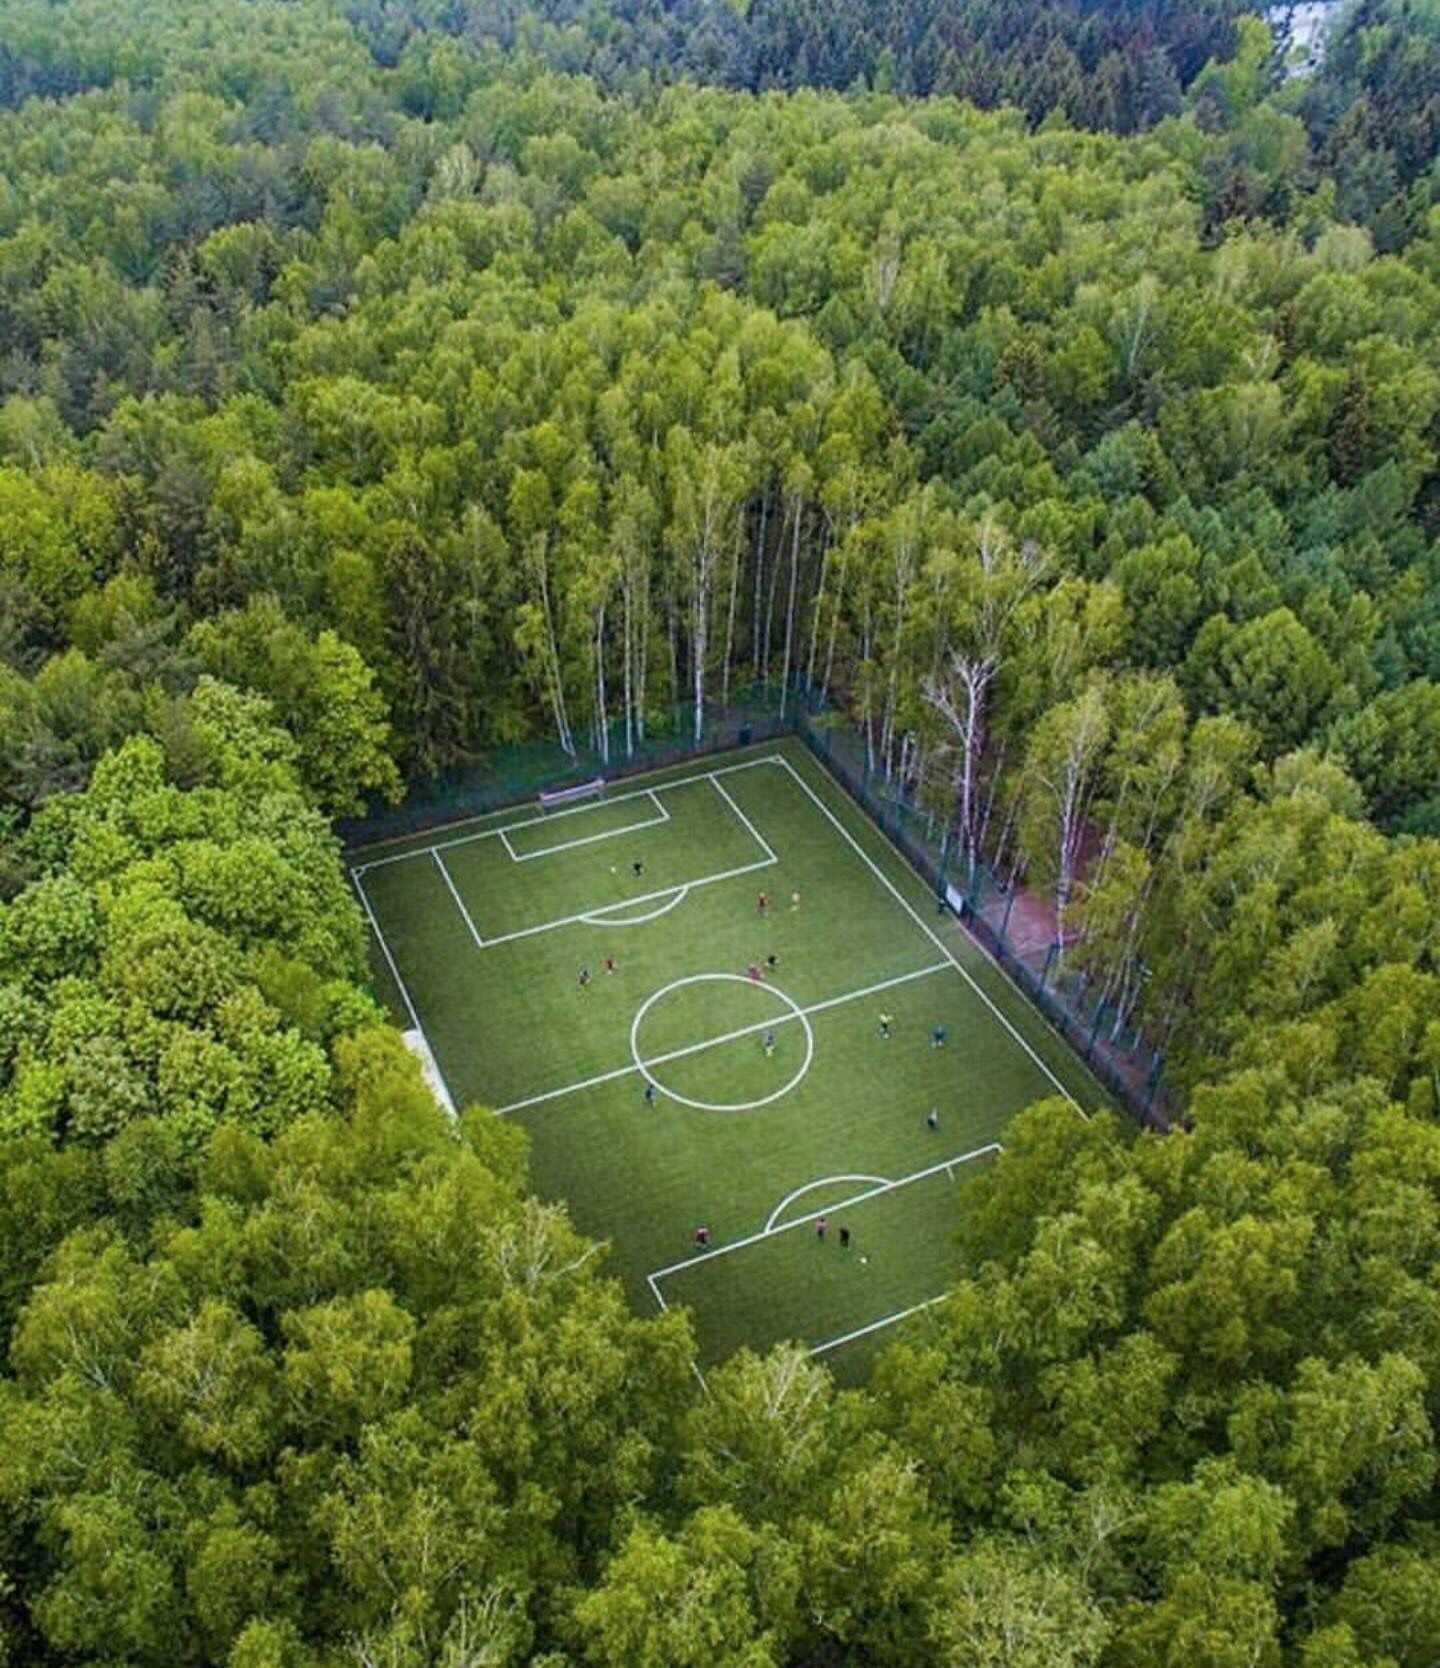 Moscow Leadership With This Football Field In The Forest Places To